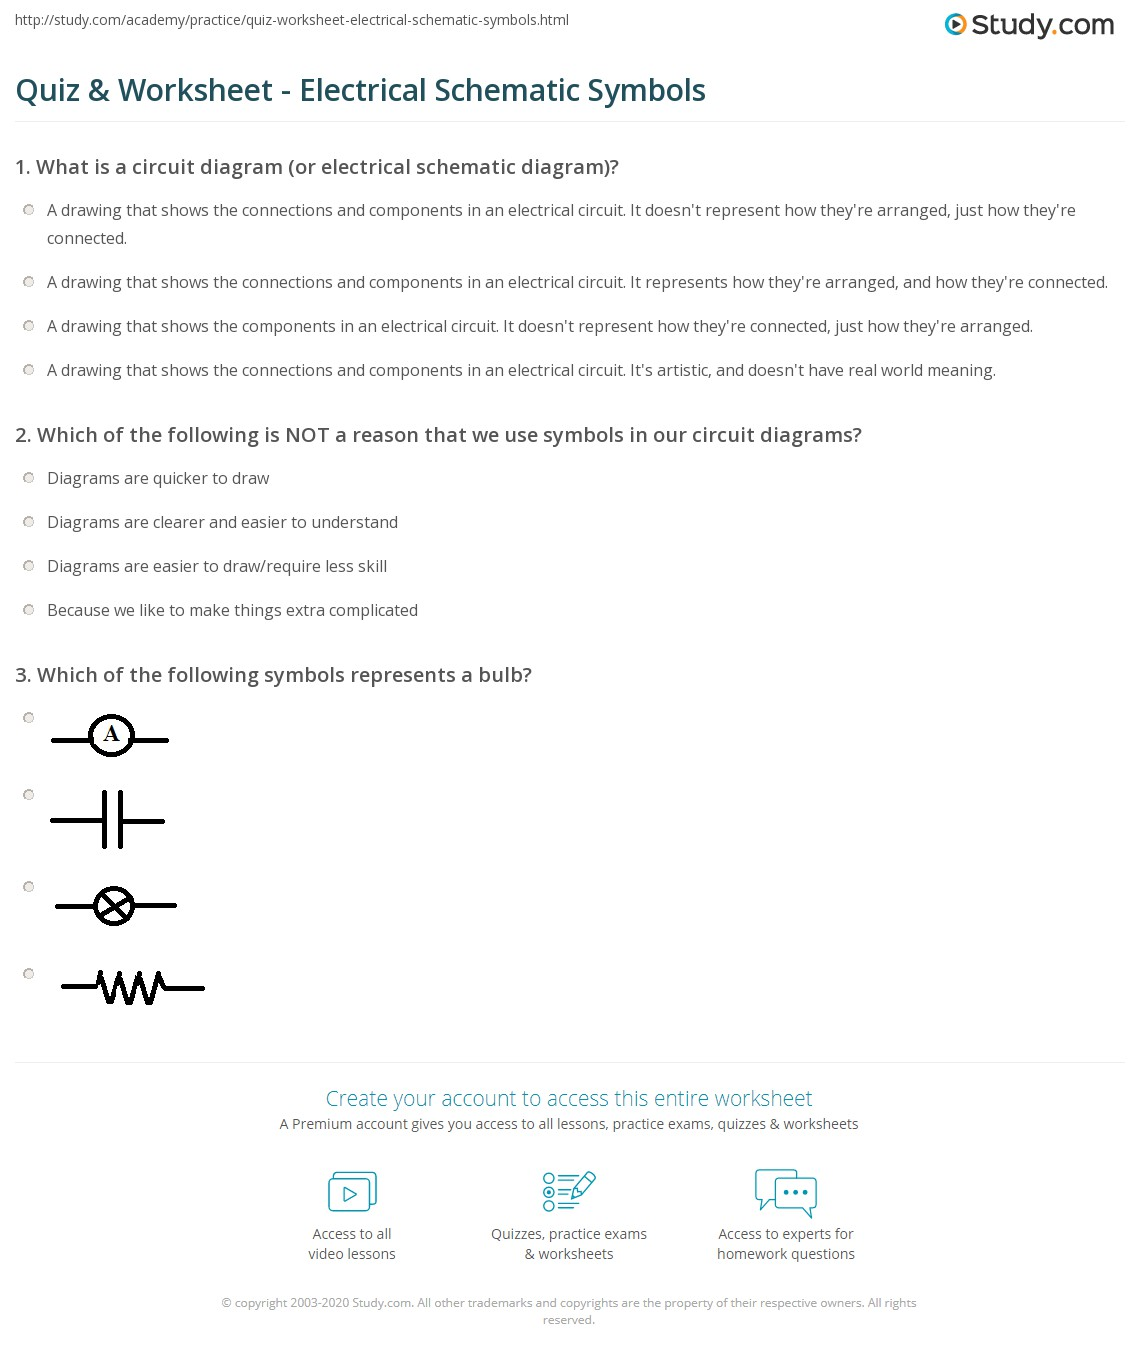 quiz worksheet electrical schematic symbols study com rh study com Basic Electrical Schematic Diagrams Electrical Schematics Symbols and Meaning